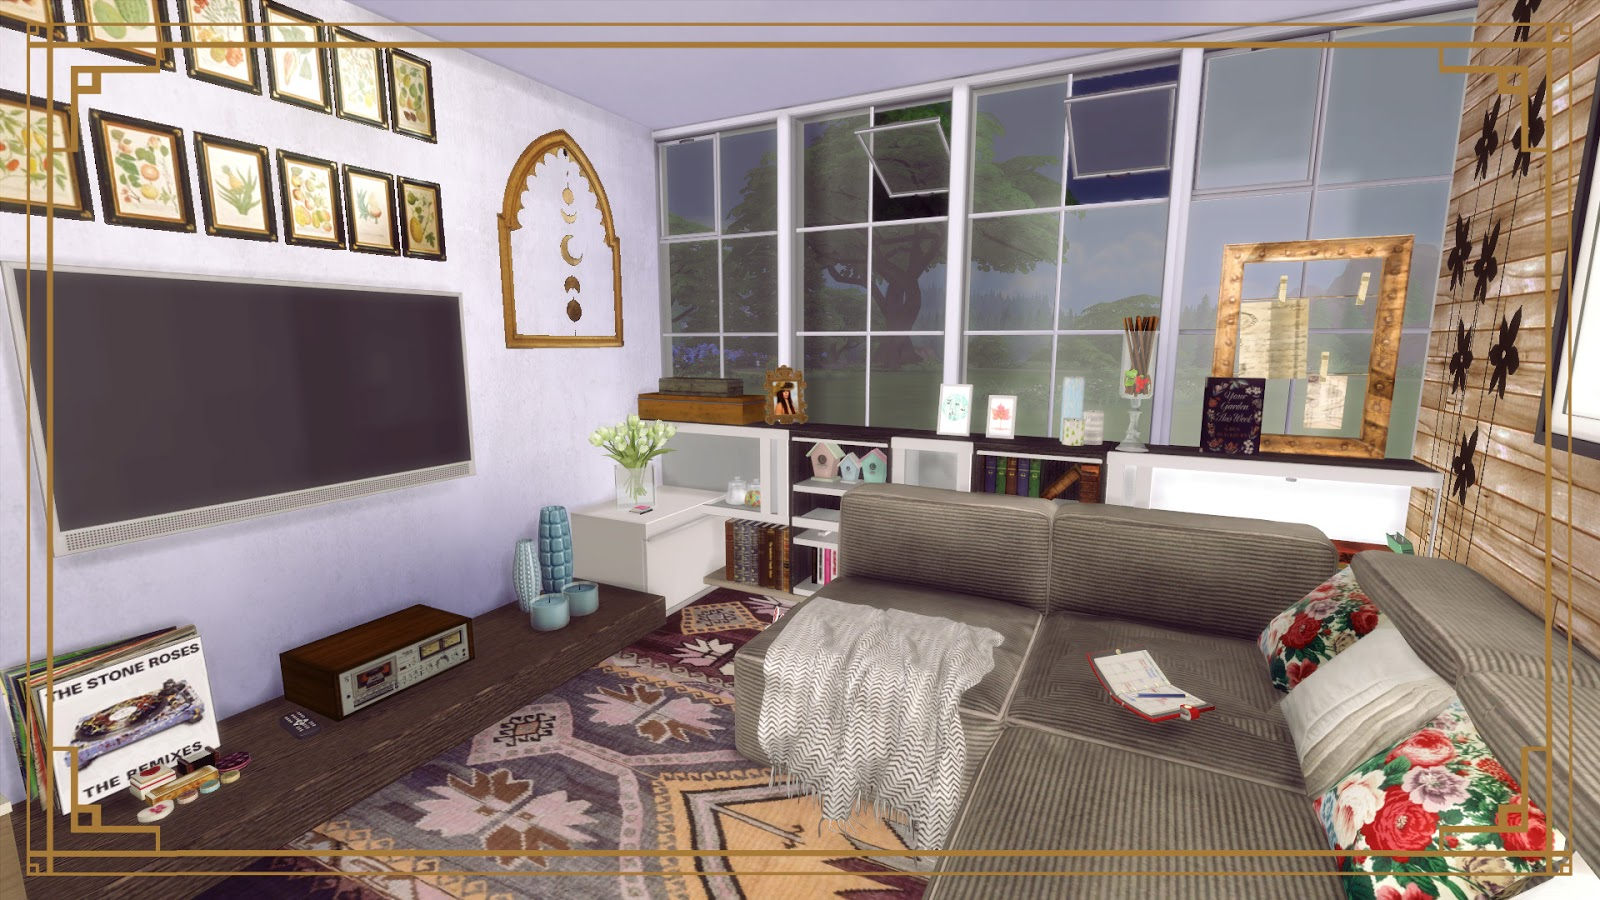 Sims 4 Cozy Living Room Ii Dinha